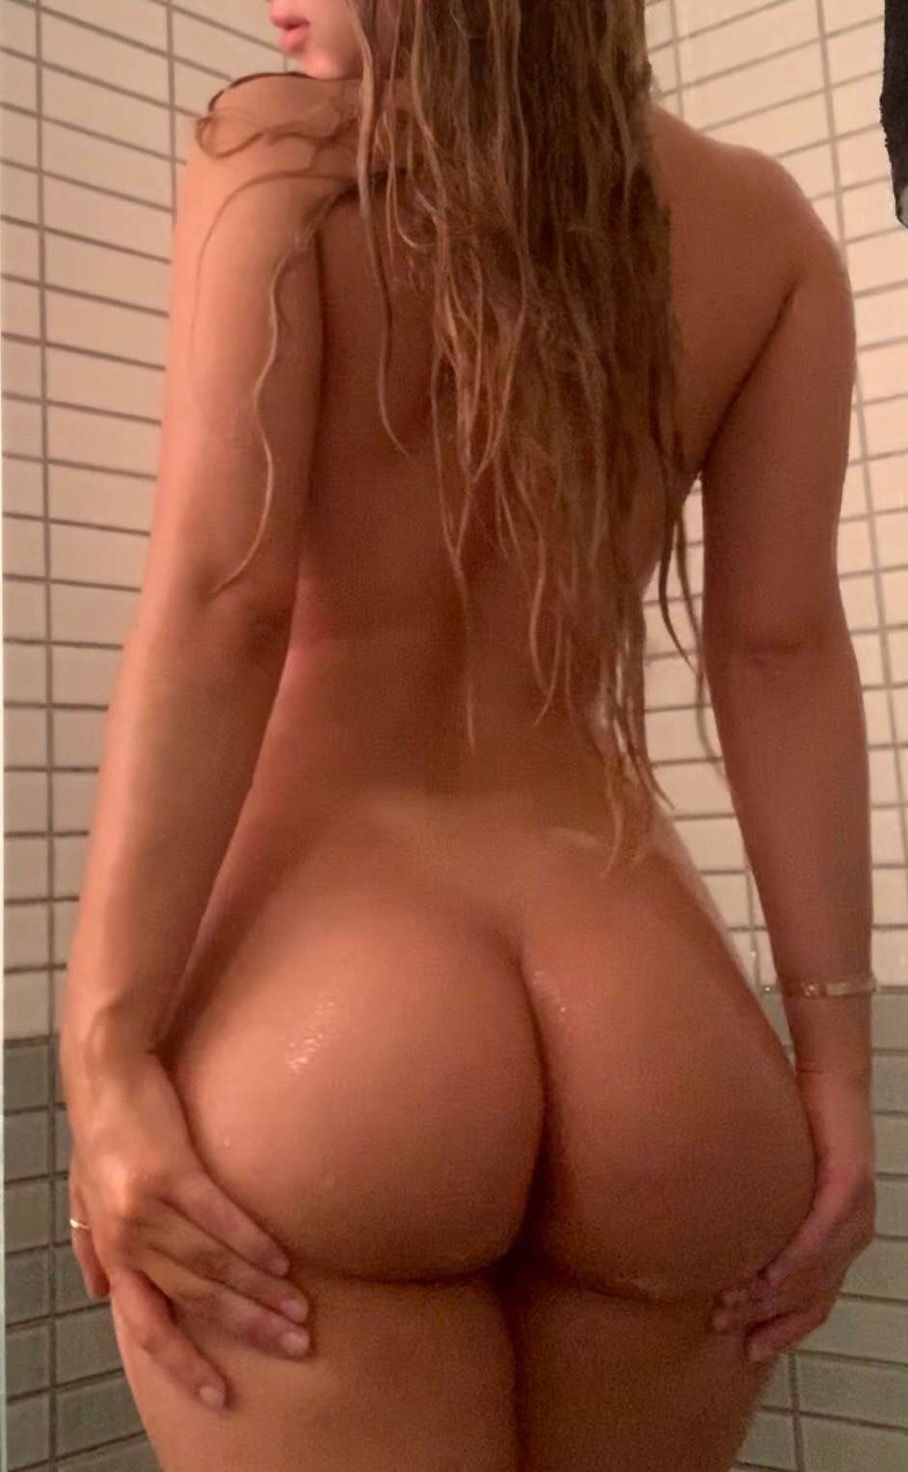 Savannah Montano Nude Onlyfans 0013